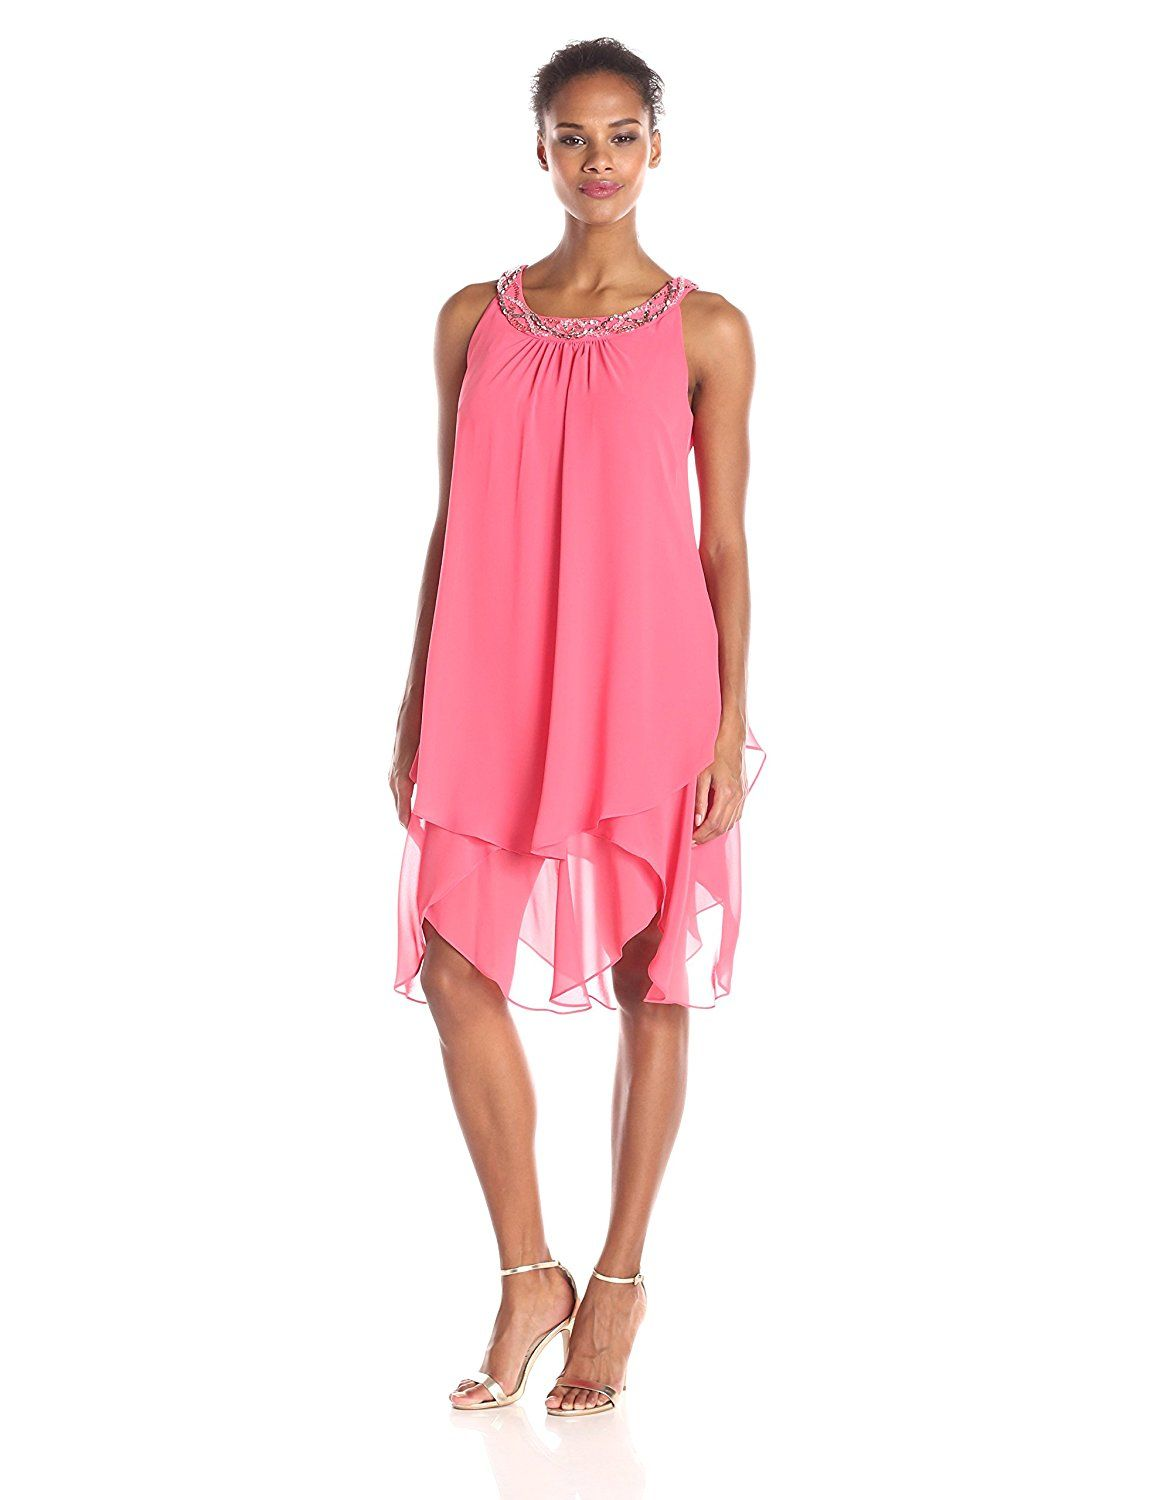 S.L. Fashions Women's Embellished Neck Chiffon Tunic Dress ** New and awesome product awaits you, Read it now  : Women's dresses